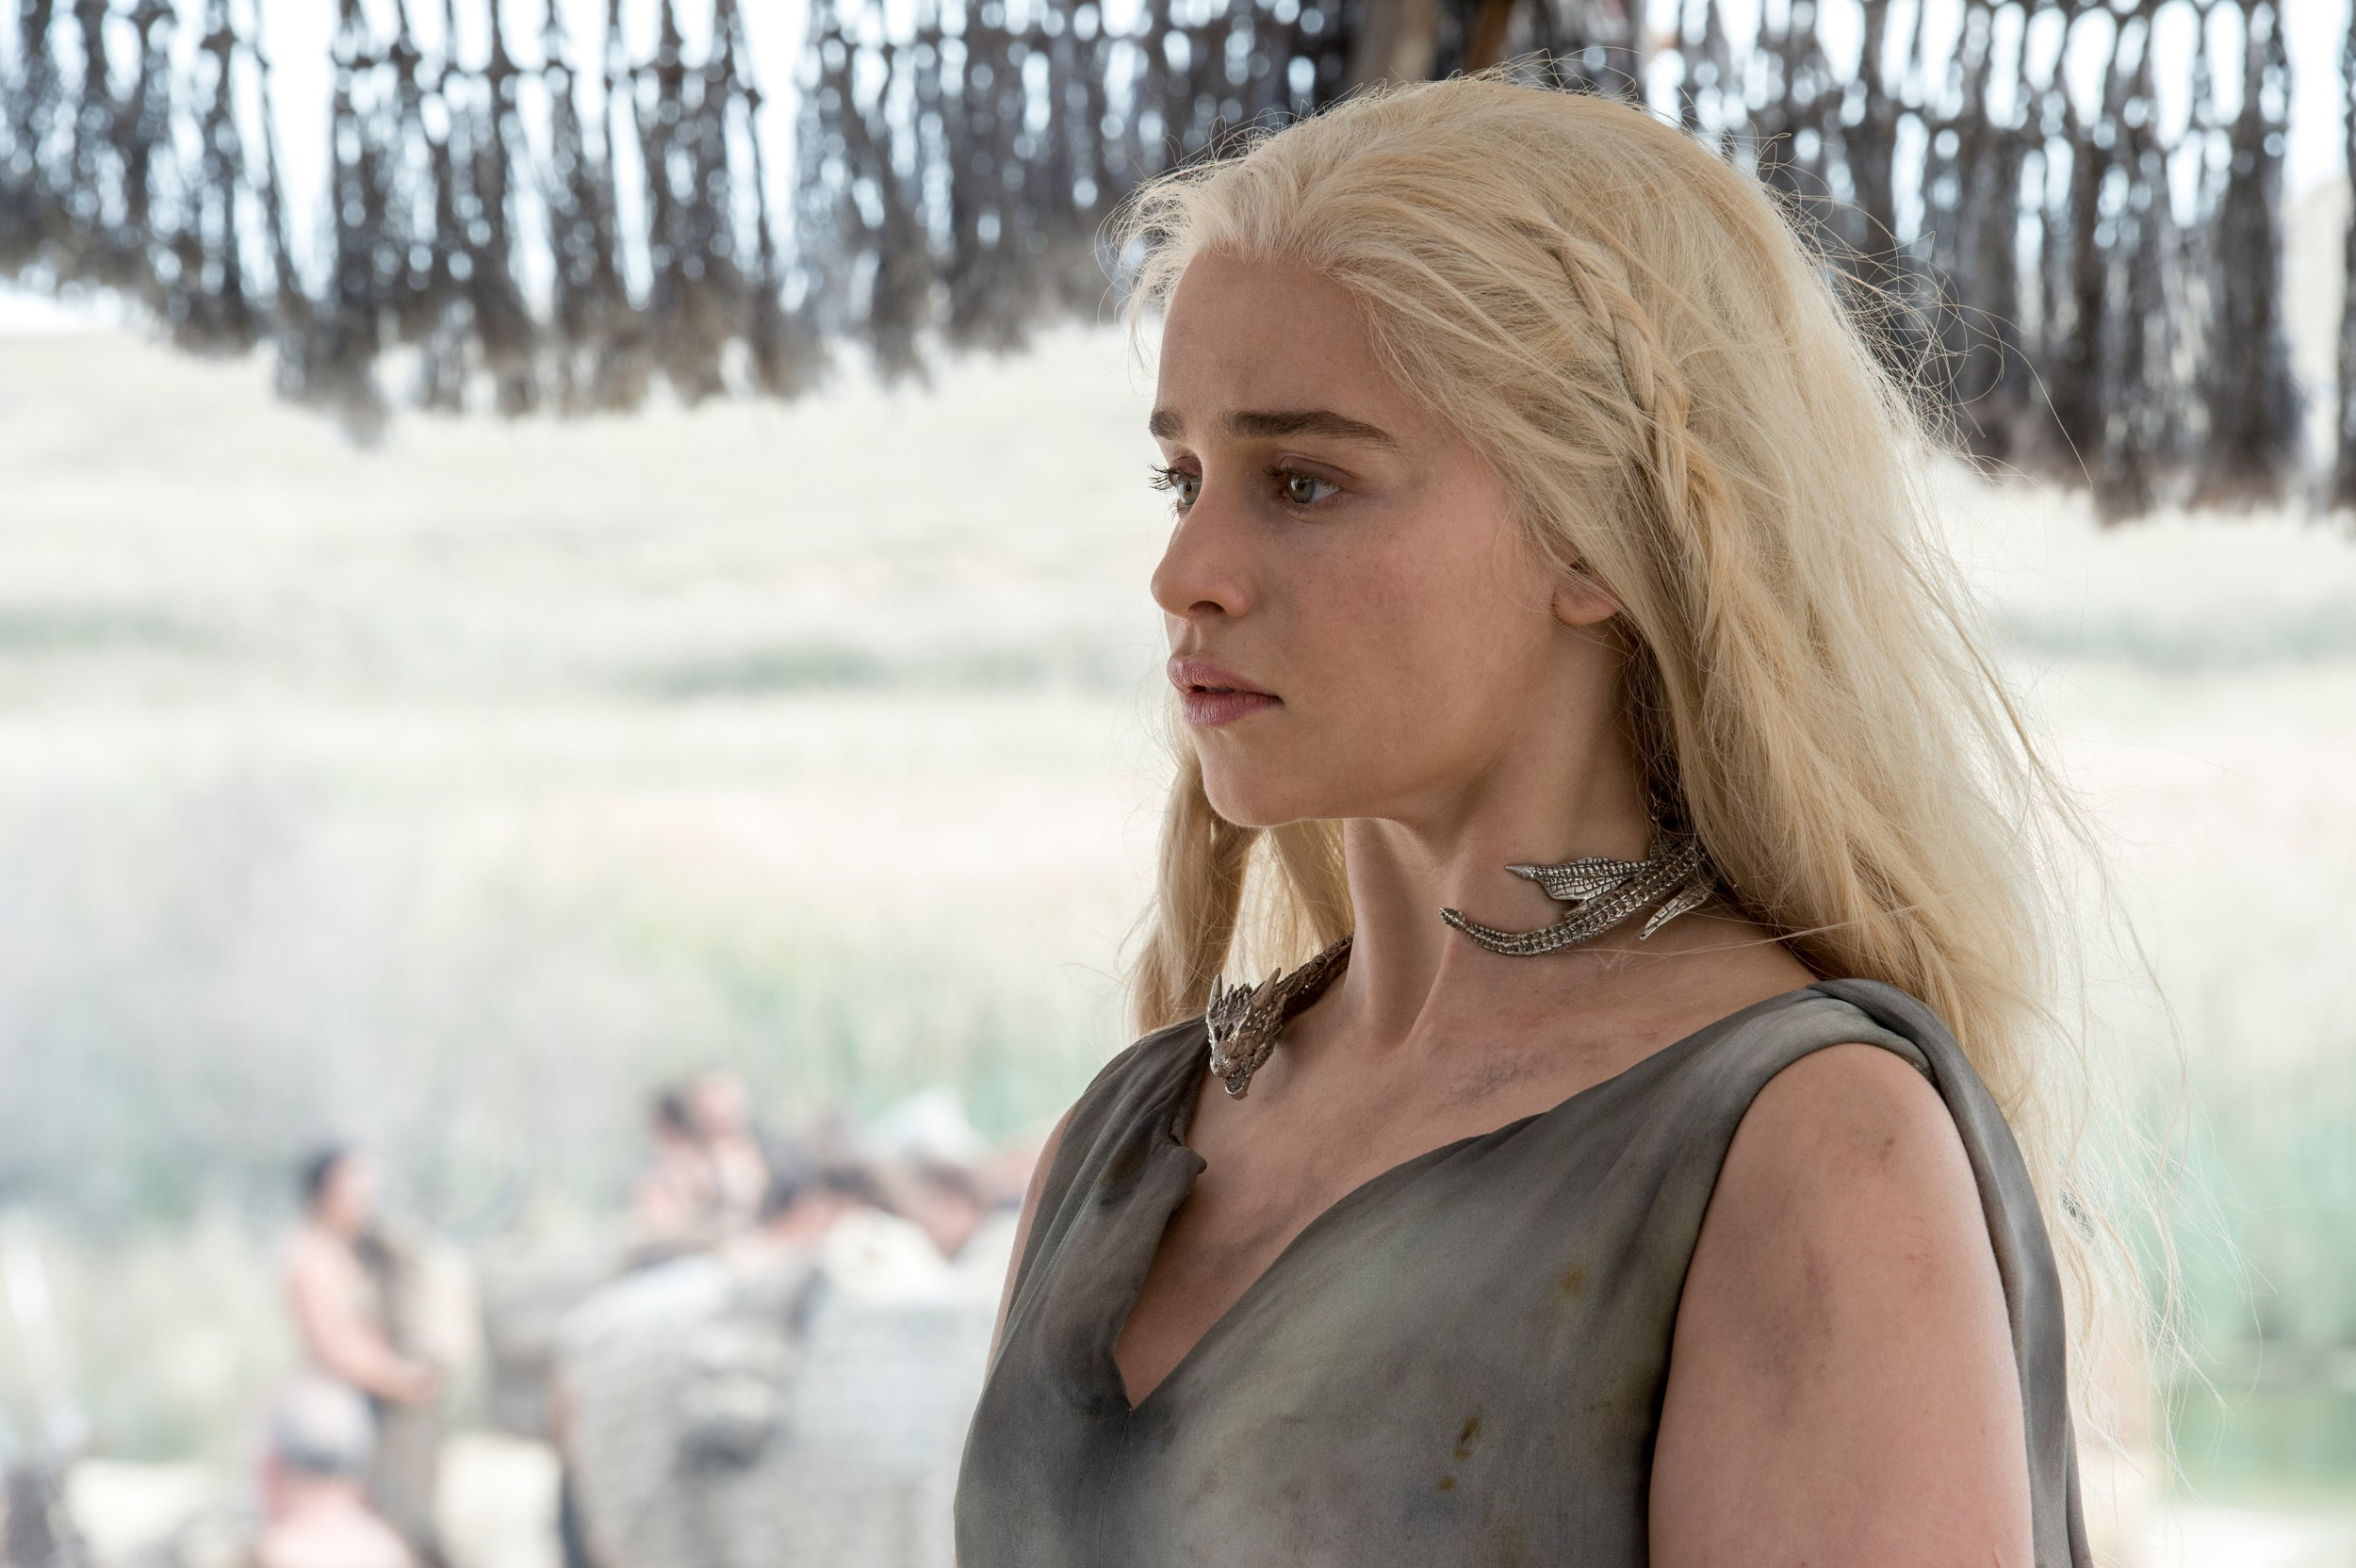 As nudity guidelines improve, TV shows like Game of Thrones will look positively medieval